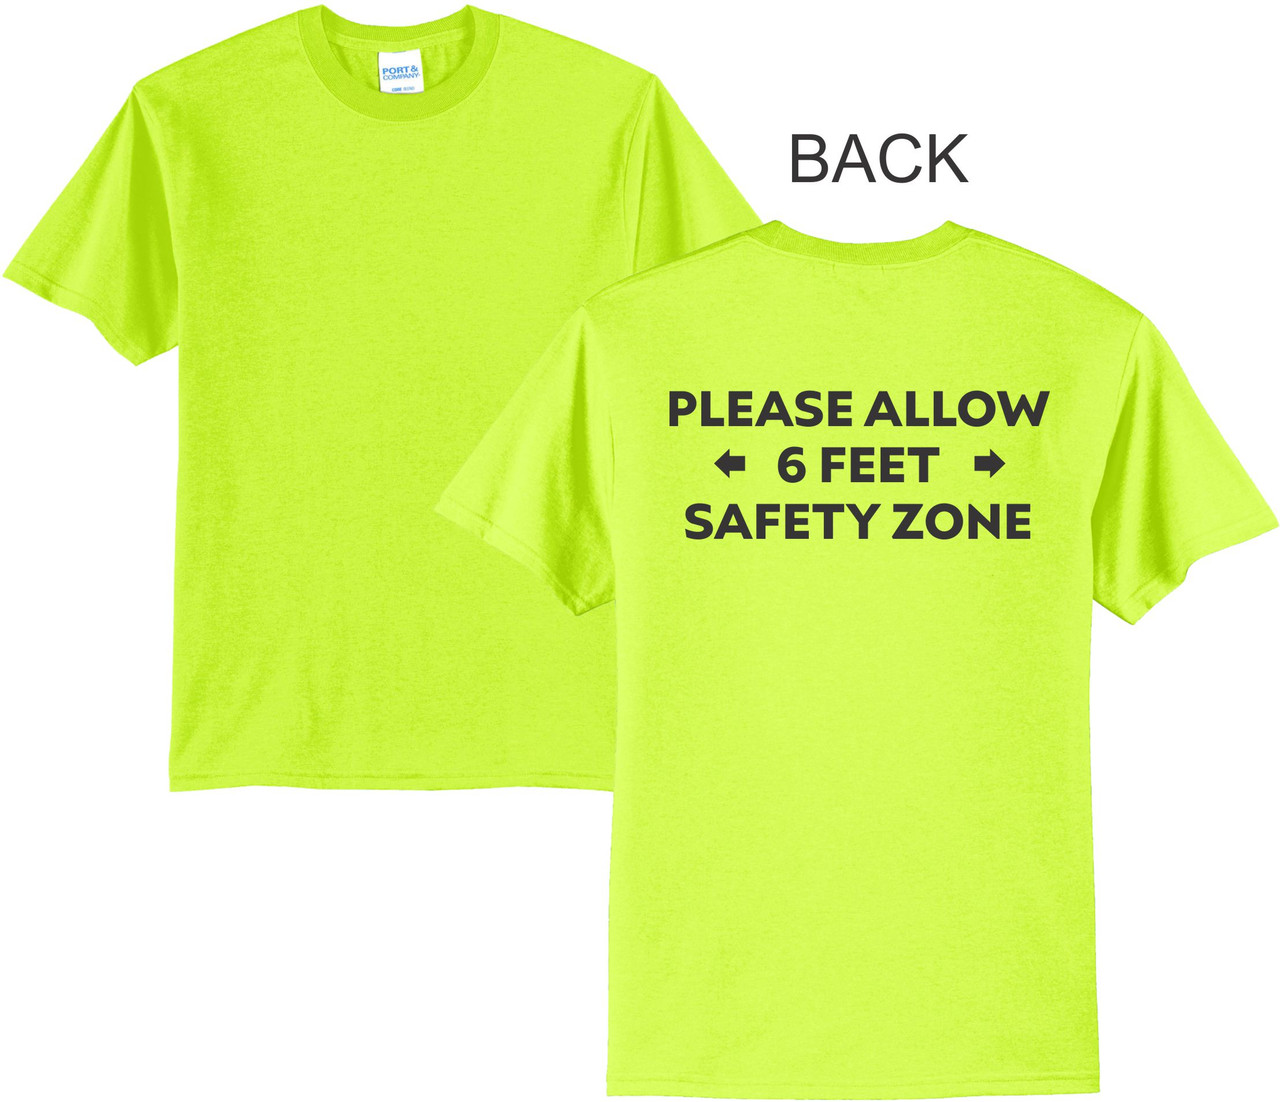 Please Allow 6 Feet Safety Zone Printed on the Back of A Safety Green Shirt